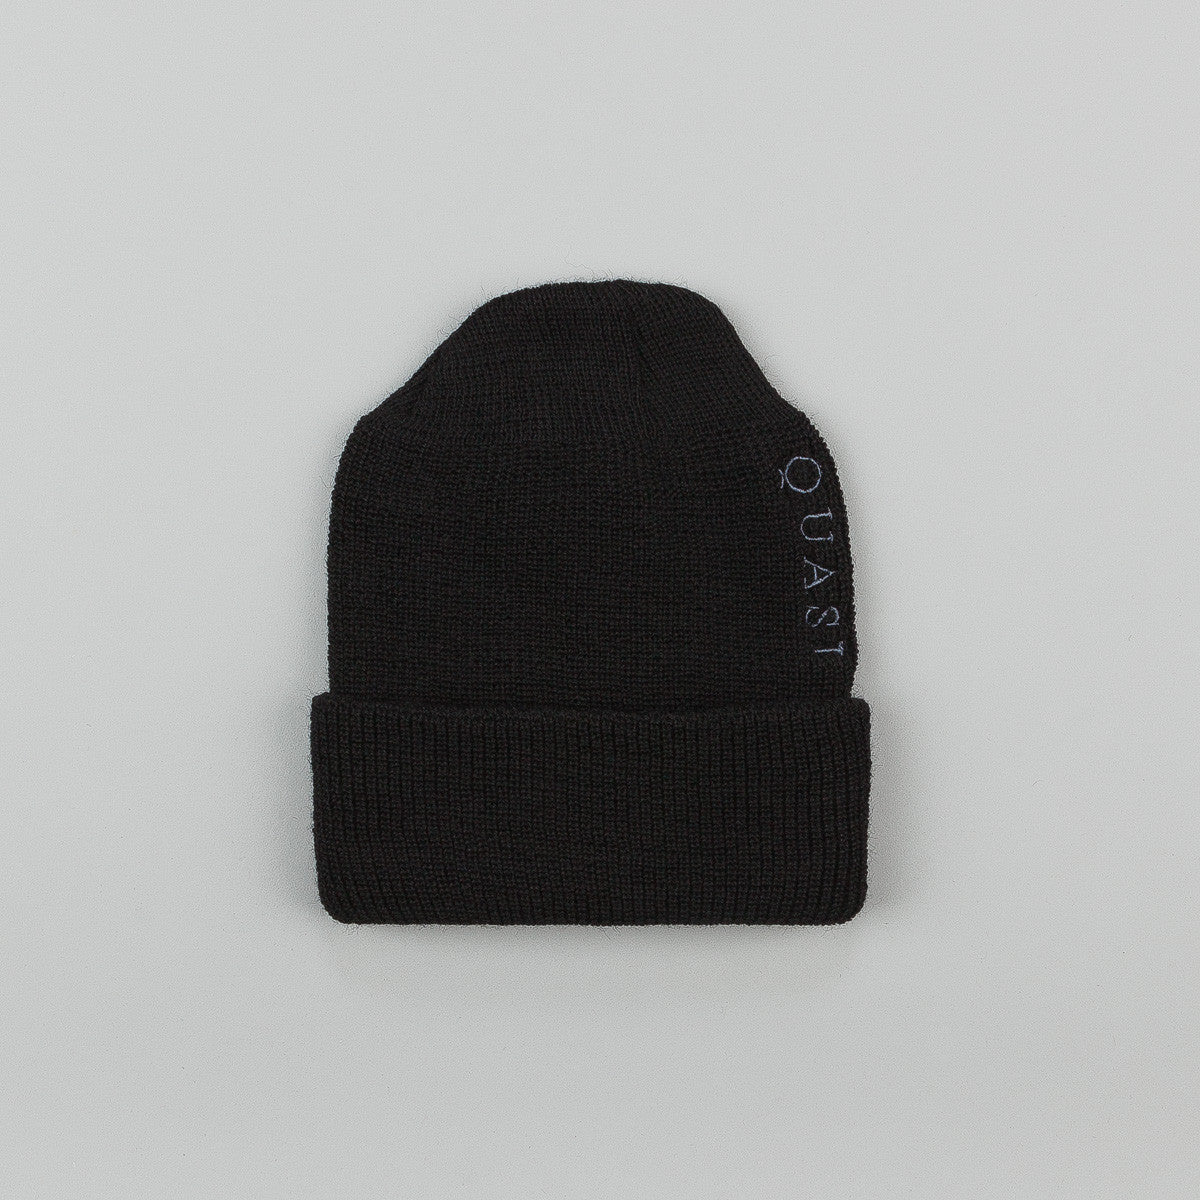 Quasi Skateboards Low Beanie